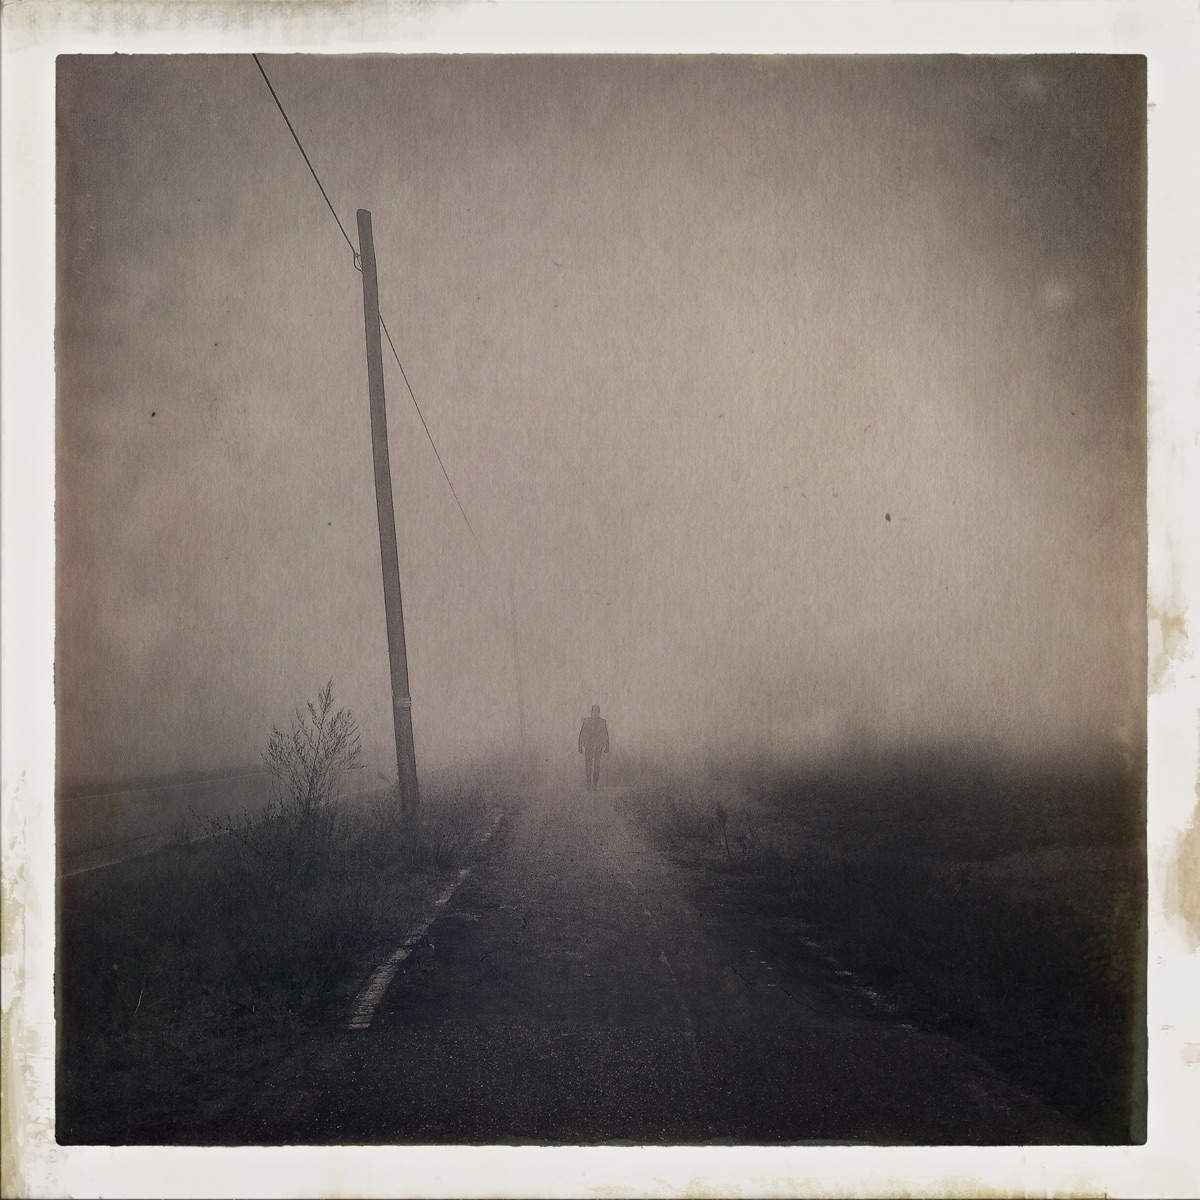 disappear completely, Hipstamat - cristinarossi | ello